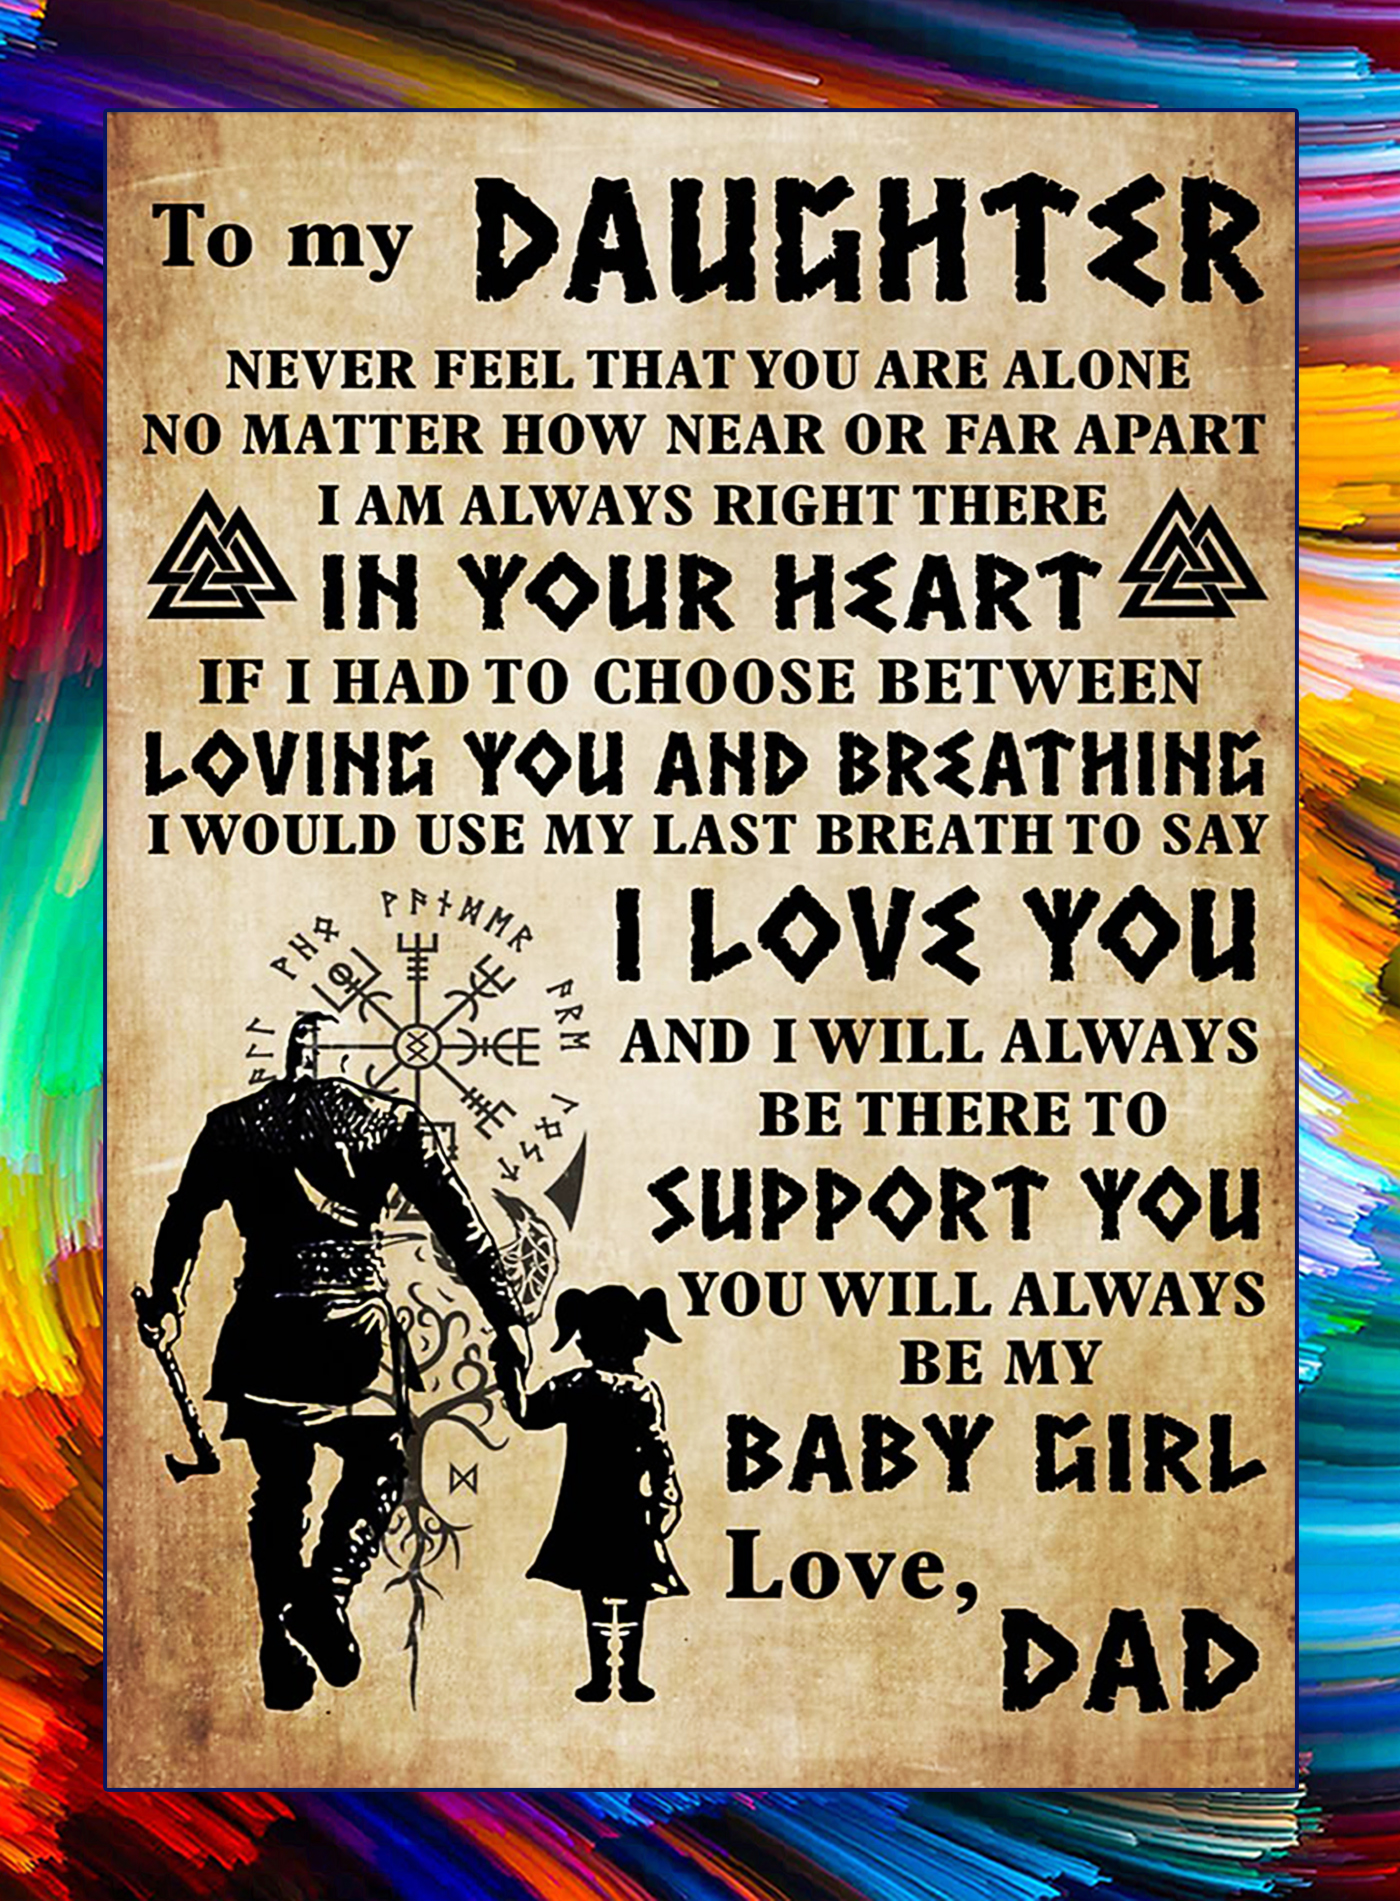 Viking to my daughter love dad poster - A1